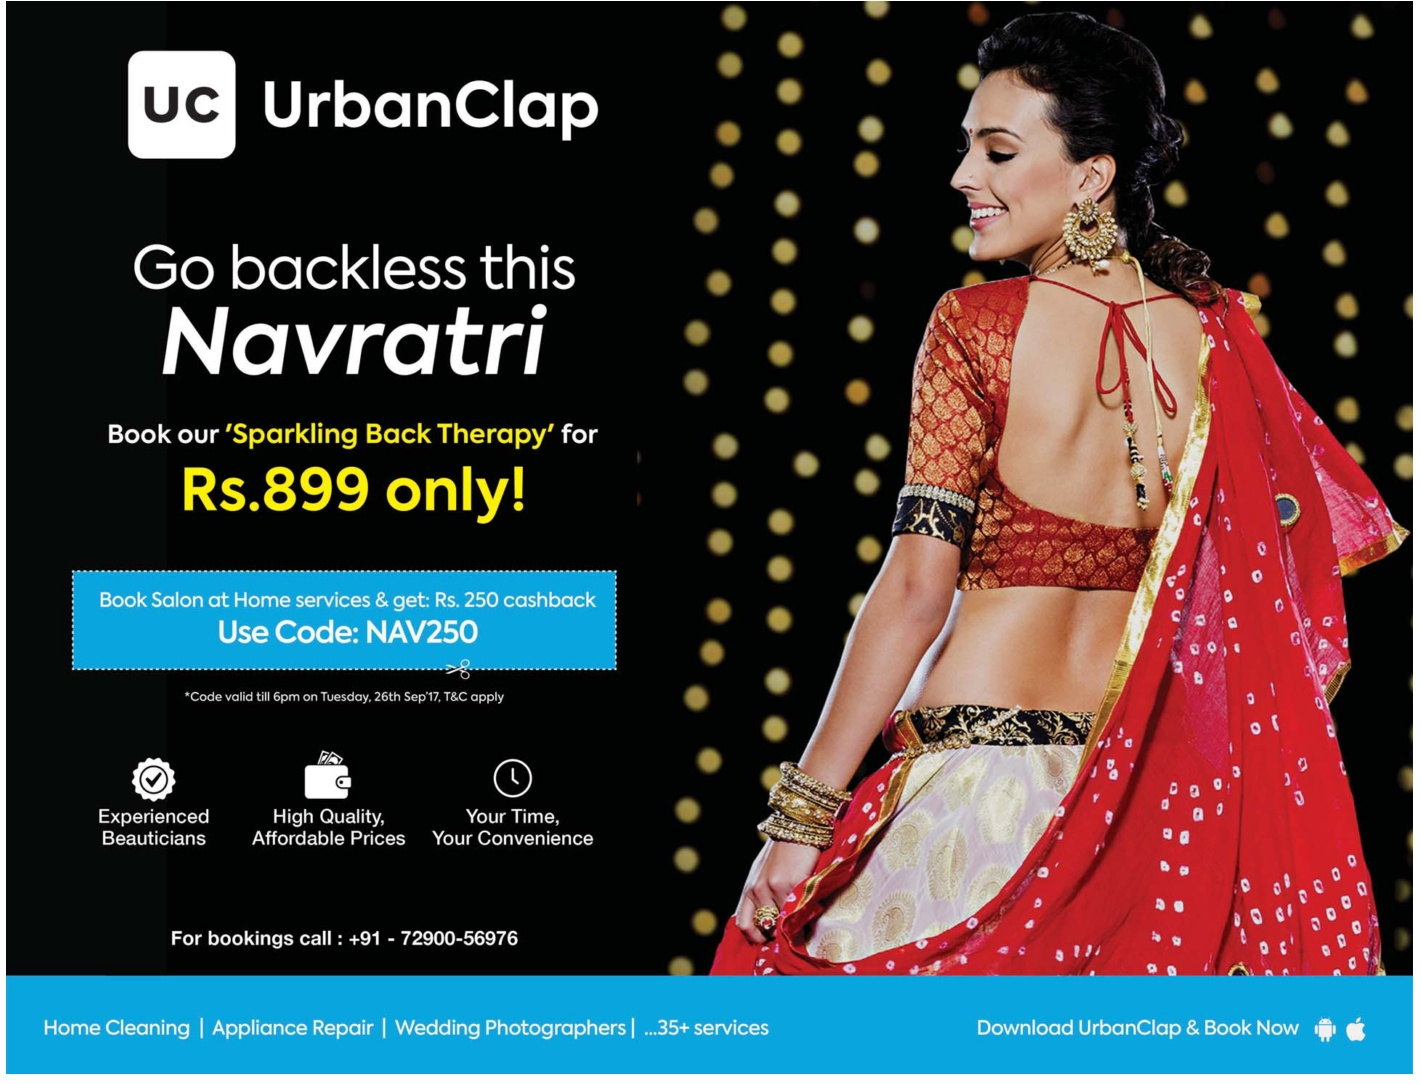 Uc Urban Clap Go Back Less This Navaratri Book Your Sparkling Back